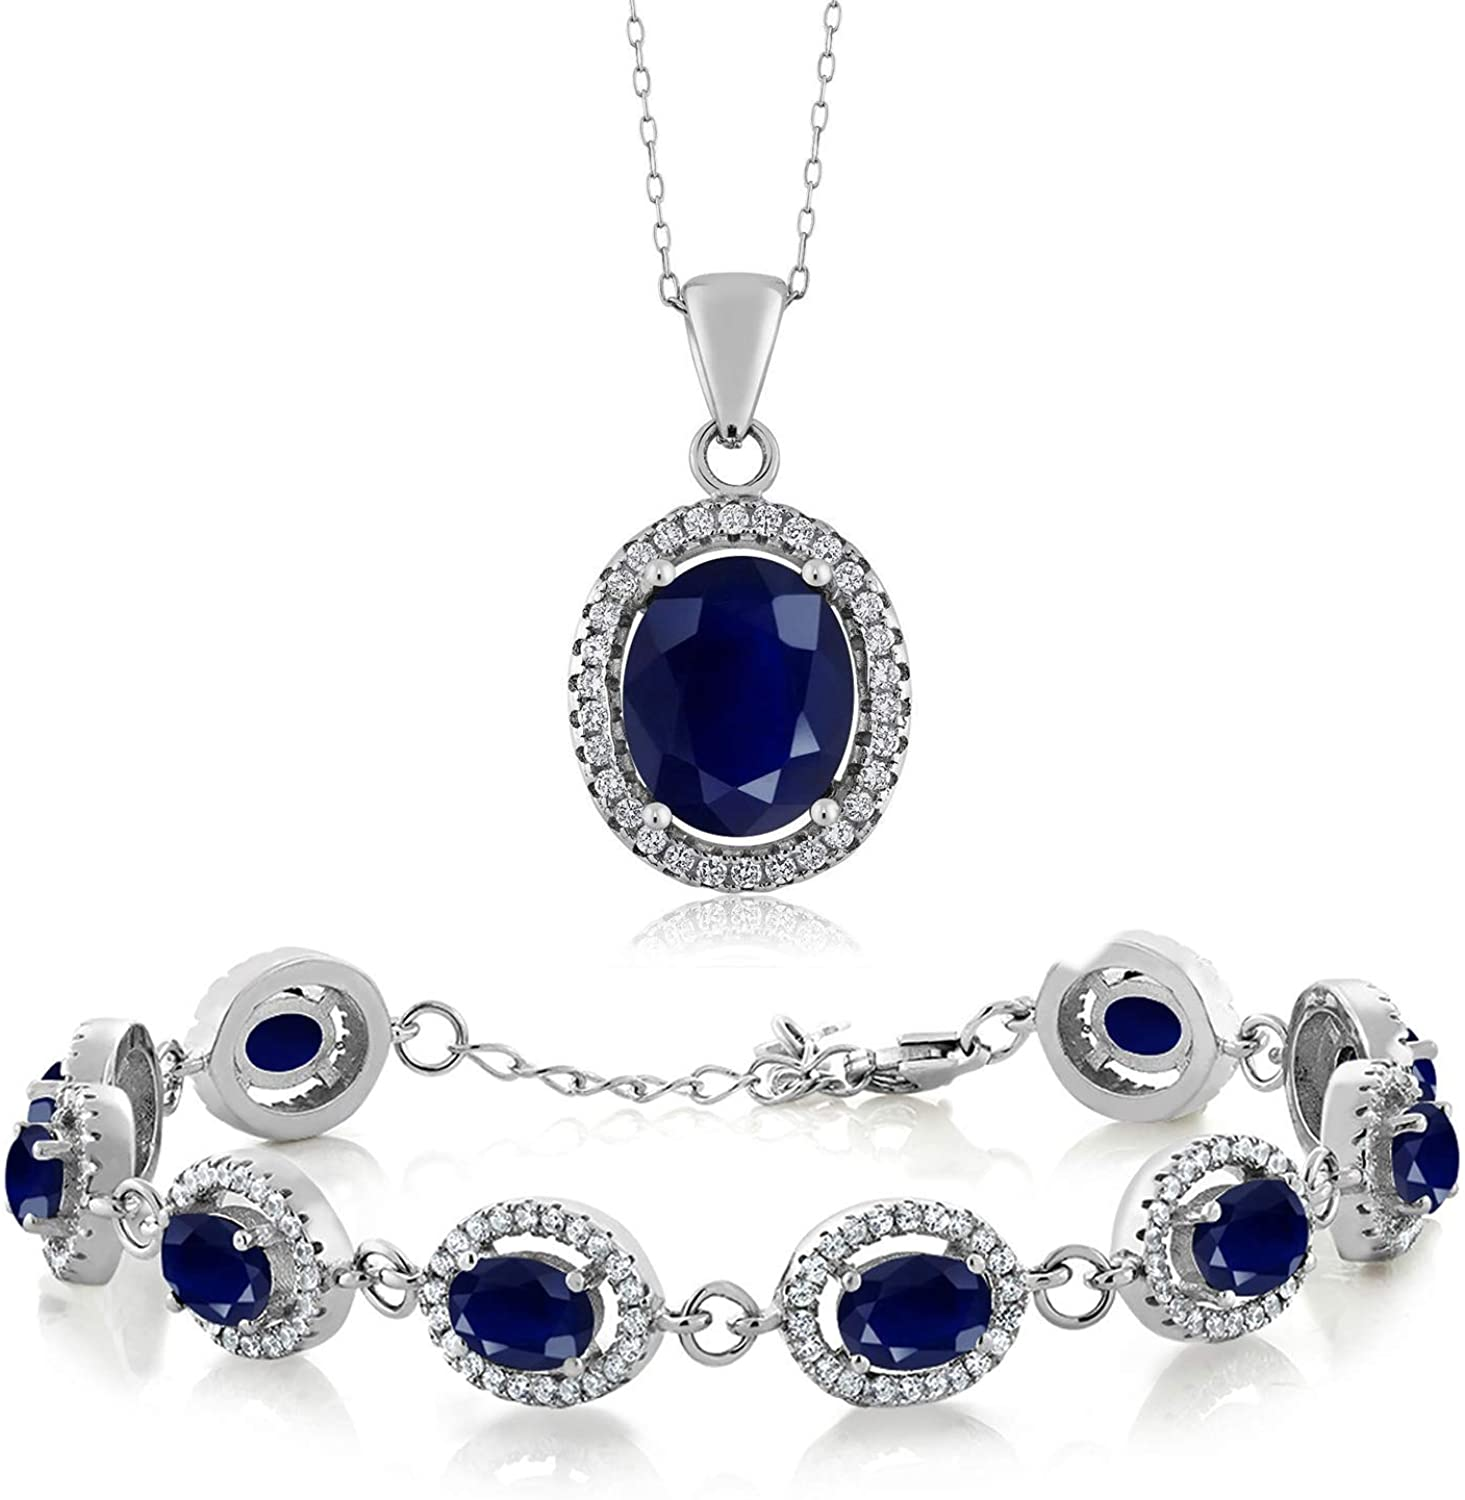 Gem Stone King 925 Sterling Silver Oval Blue Sapphire Pendant and Bracelet Set Bundle For Women with 18 Inch Silver Chain